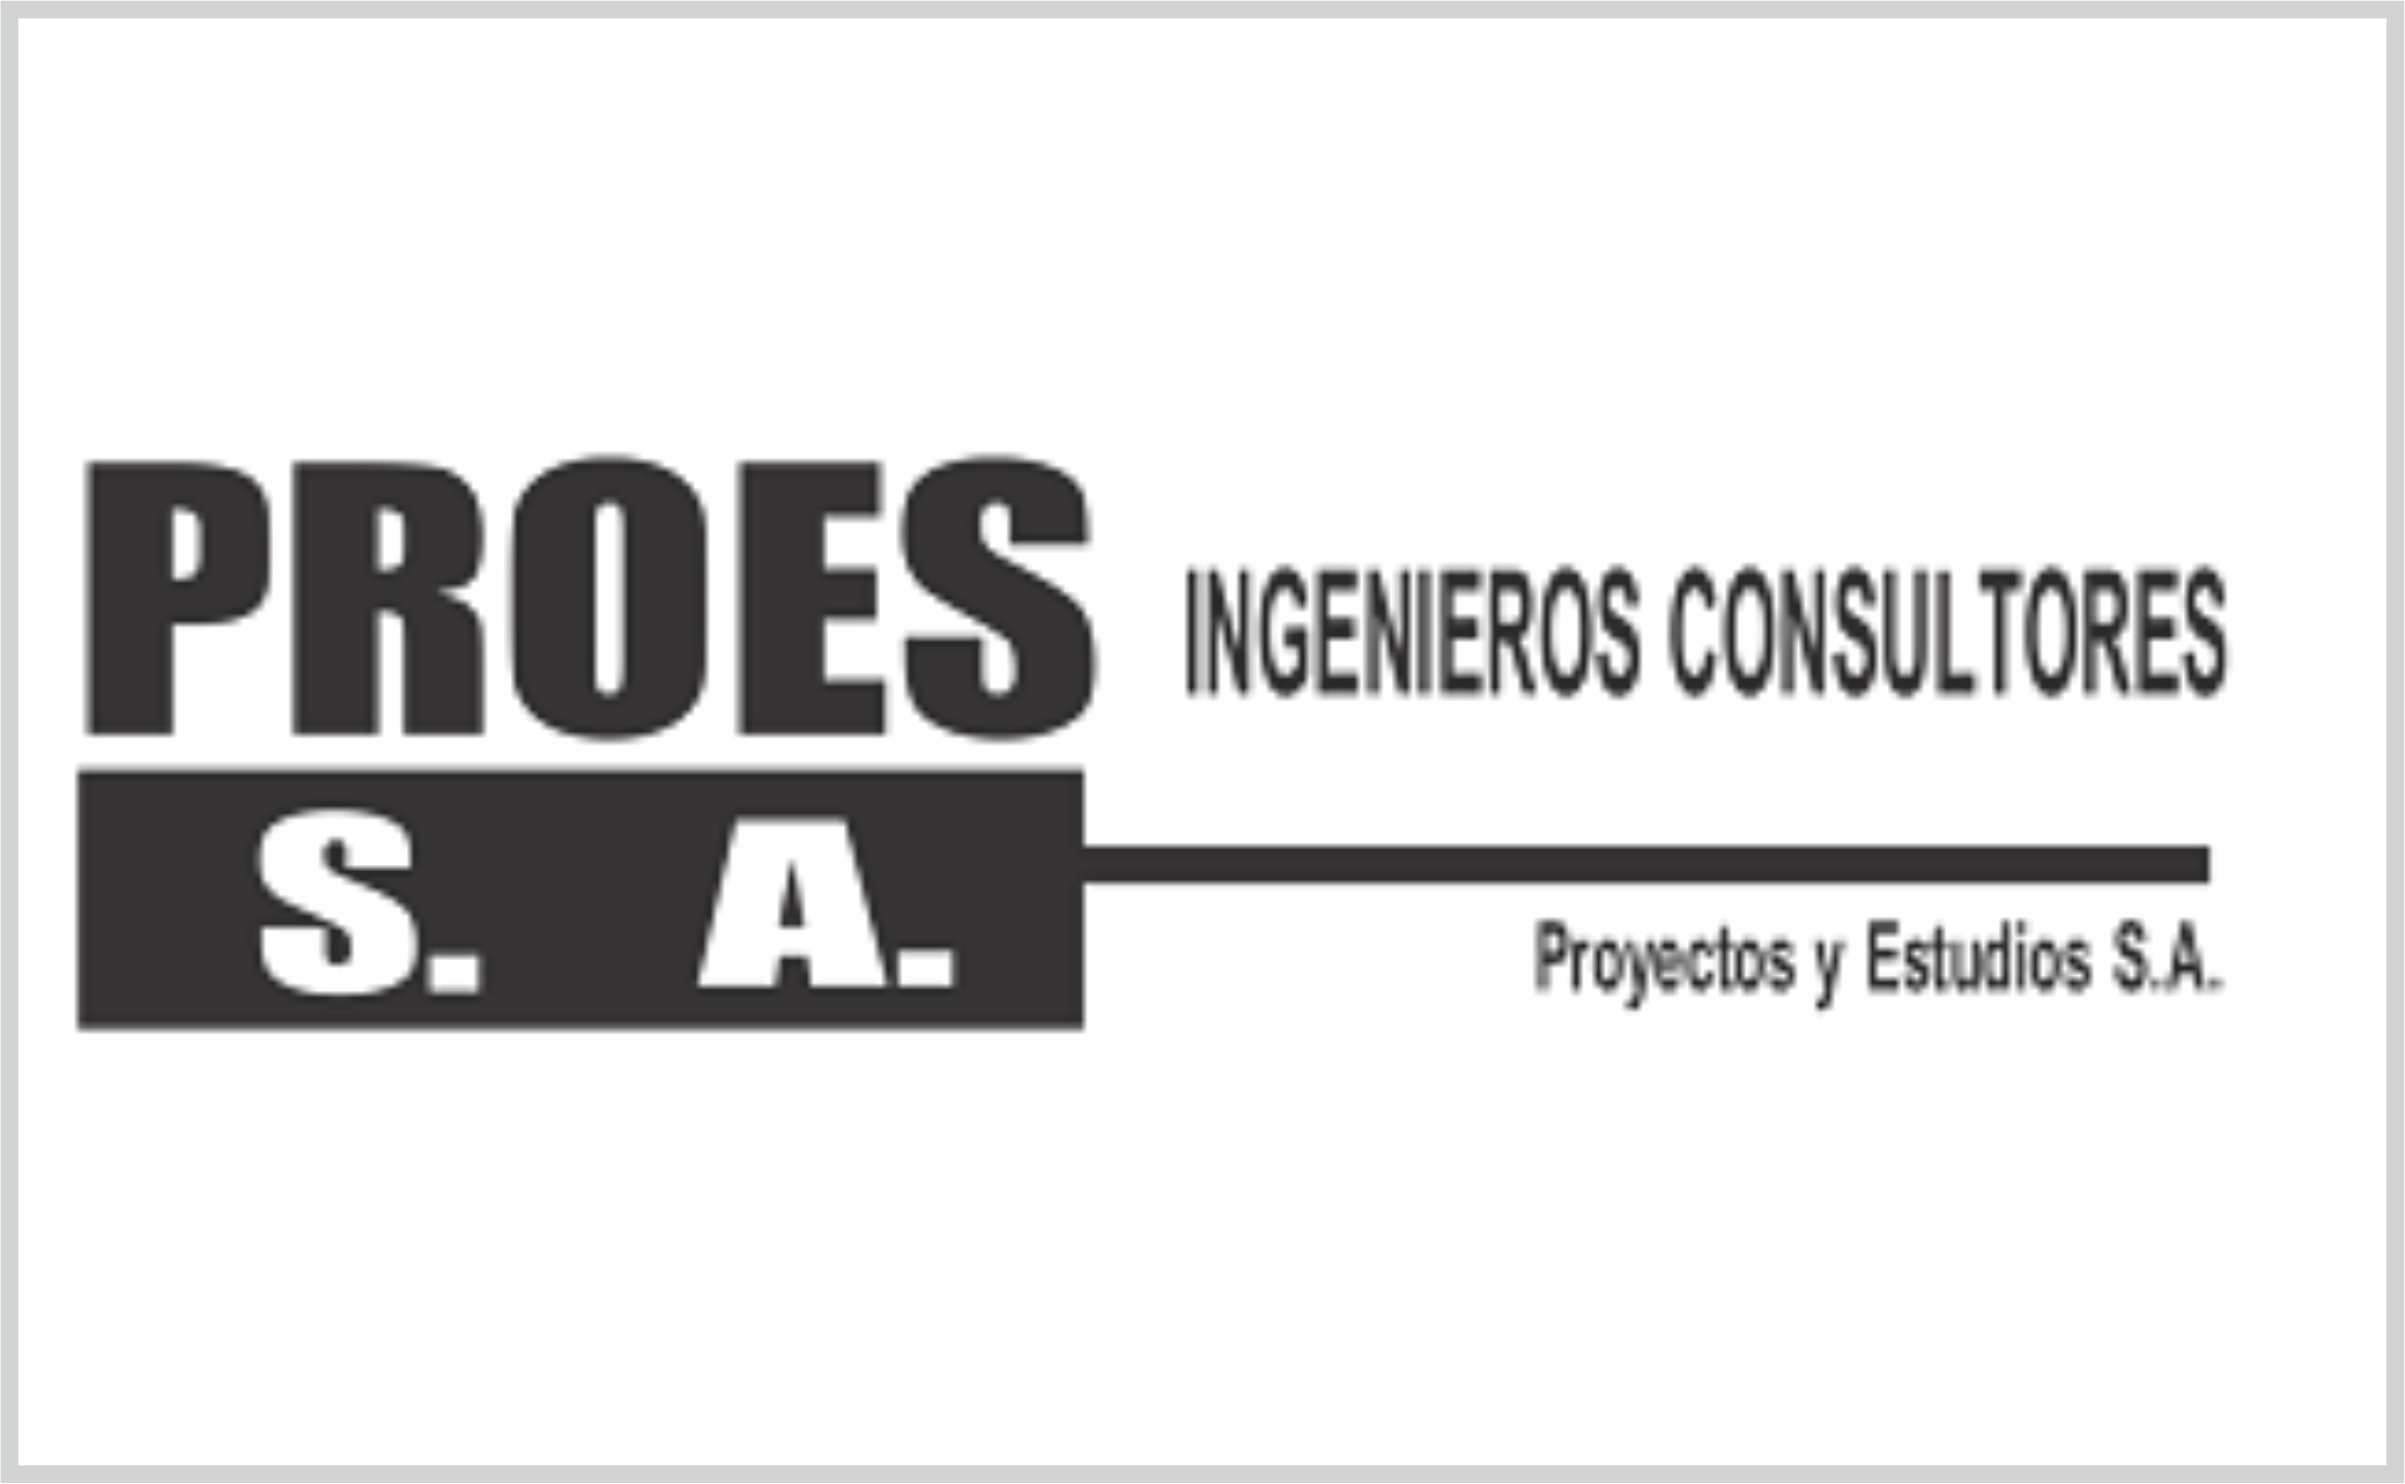 PROES S.A.